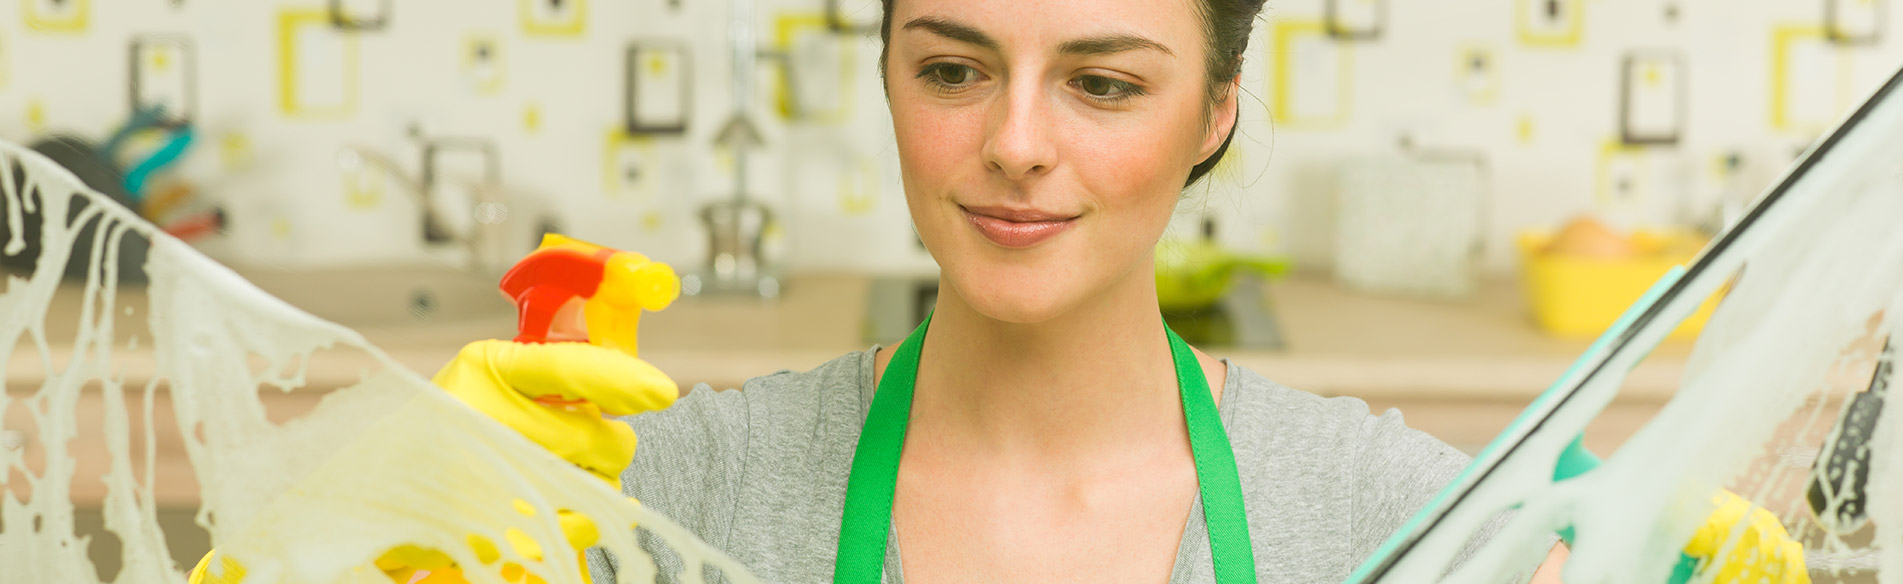 Cleaners Harringay N4 Incredible Offers On Cleaners Services